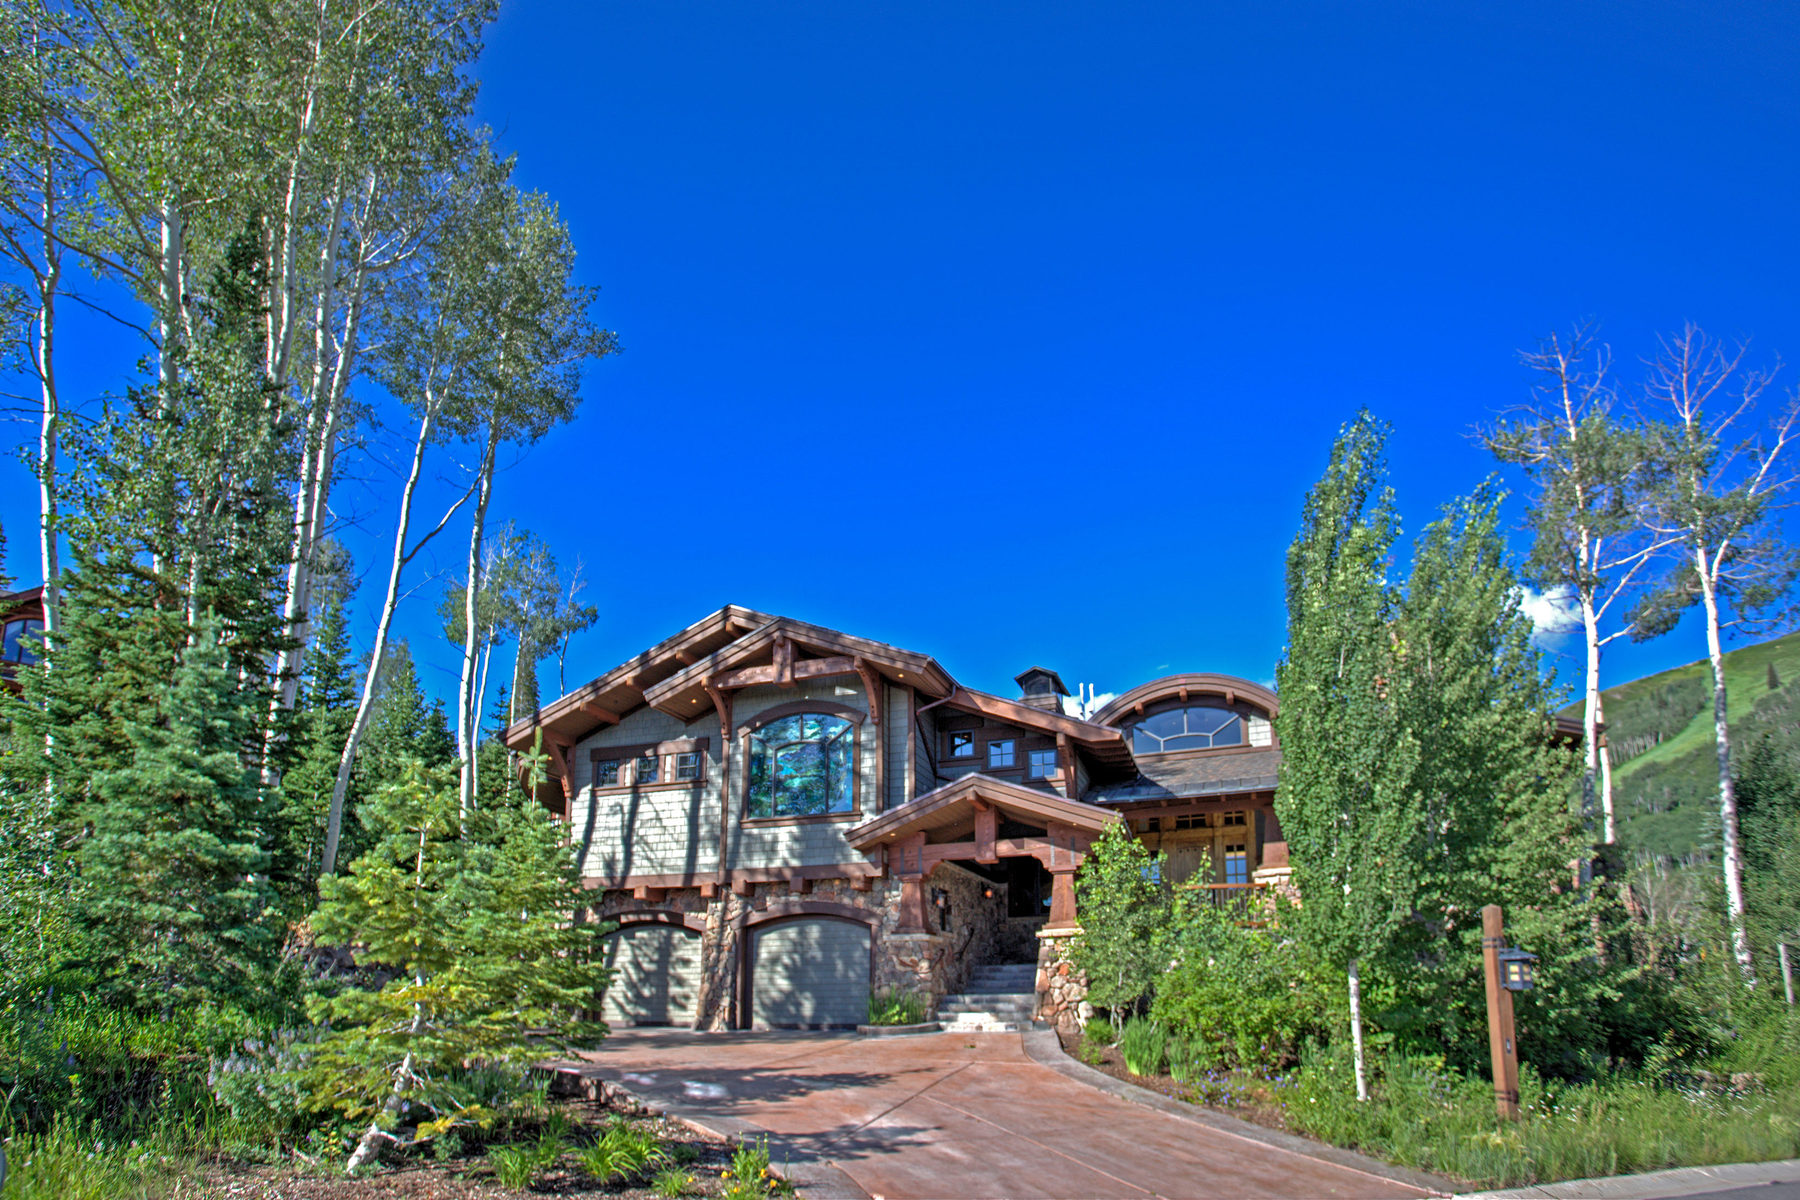 Casa Unifamiliar por un Venta en Rare Opportunity to Own in Northside Village 1 Northside Court Lot 2 Park City, Utah 84060 Estados Unidos